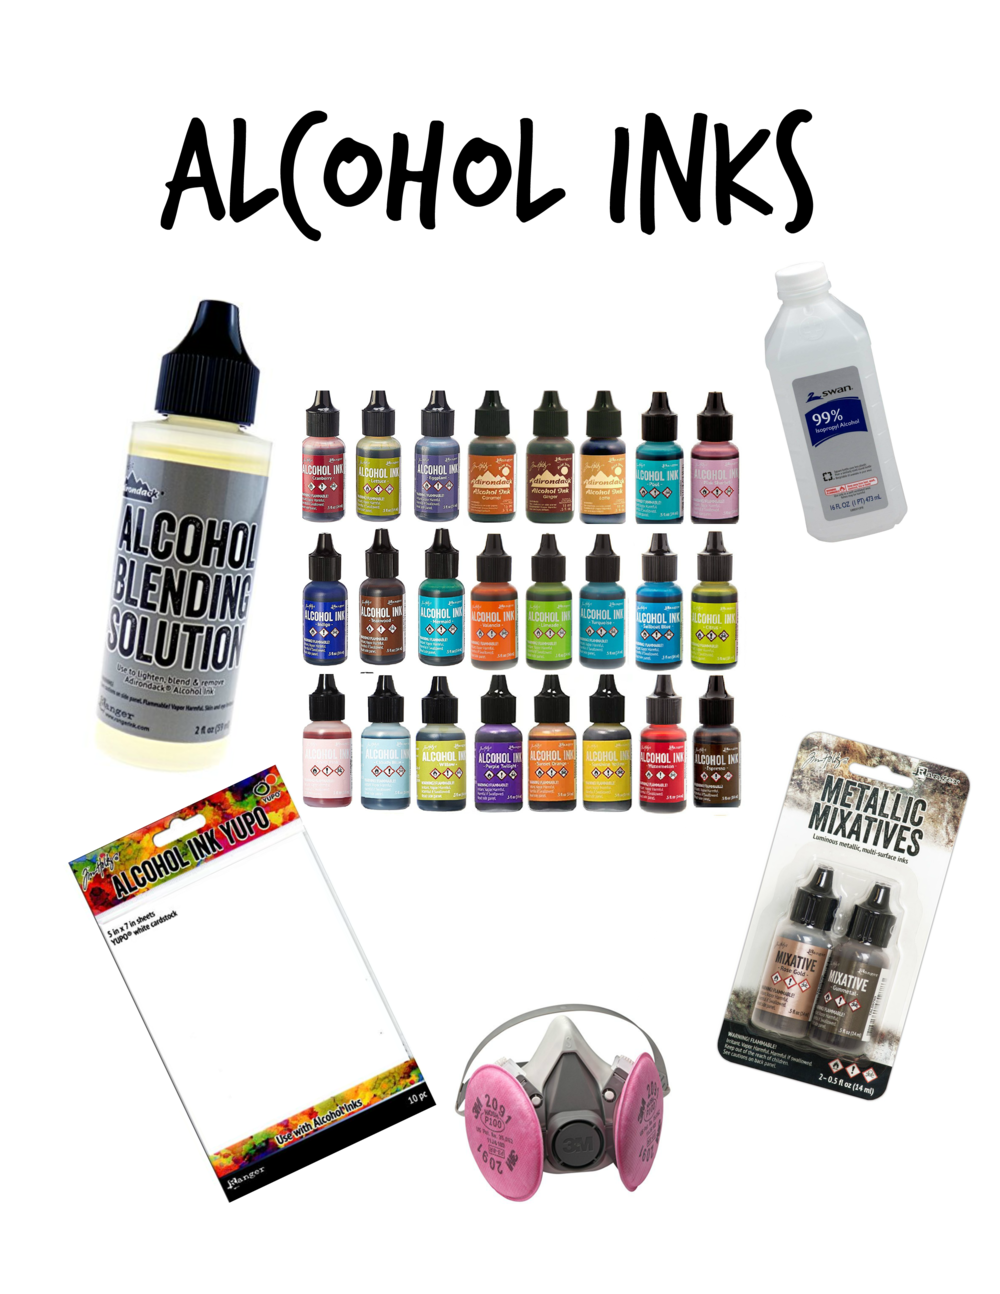 """- I have had best luck with Tim Holtz alcohol inks, but other artists have recommended Copic and Pinata brands. My favorite color to use is """"lettuce."""" Definitely purchase some blending solution, but you can also use rubbing alcohol for a different look. I have added the heat gun that I use, but you can also use a hair dryer (with caution as these materials can be flammable!) You must work on a non-porous surface, so you can use Yupo paper, ceramic, or coat a canvas in latex paint, otherwise the alcohol ink eats right through! Wear a respirator and work in a well-ventilated area, these get smelly! The mixatives have been more of a challenge for me, but the pearl, rose gold, and gold can add such beautiful details, and are worth a try, too!"""